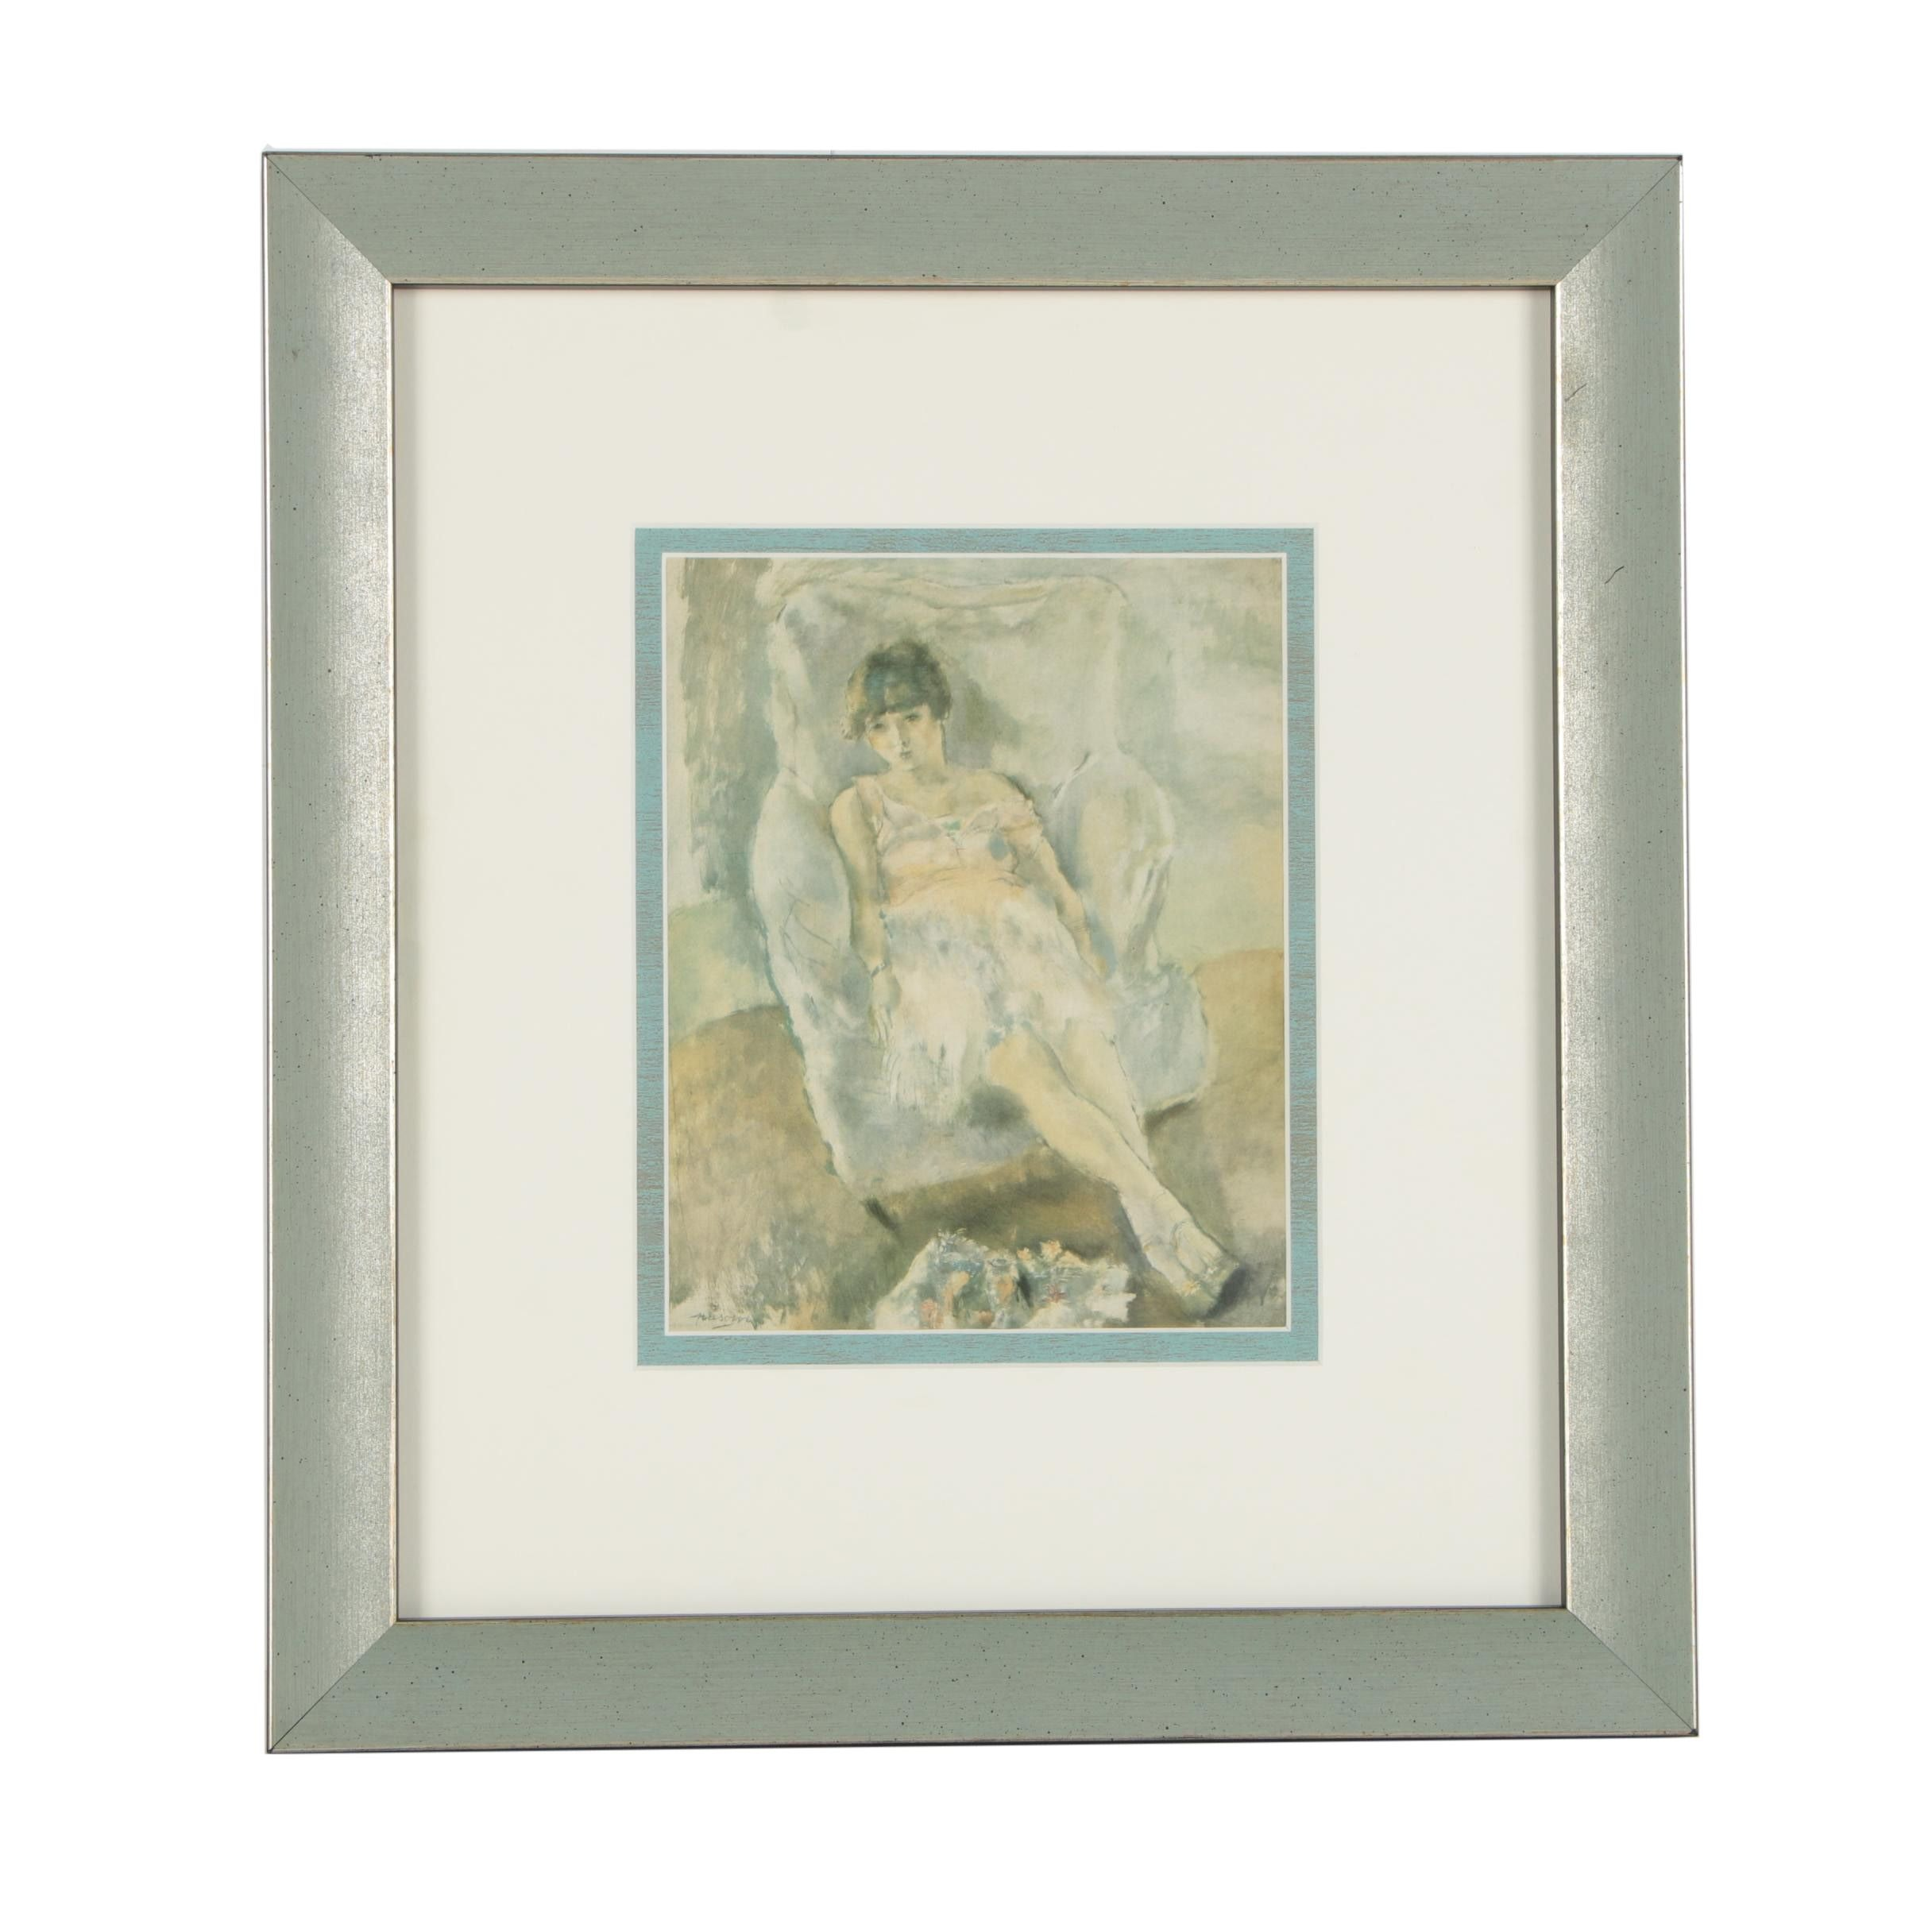 "Framed Offset Lithograph After Jules Pascin's ""Bibi"""